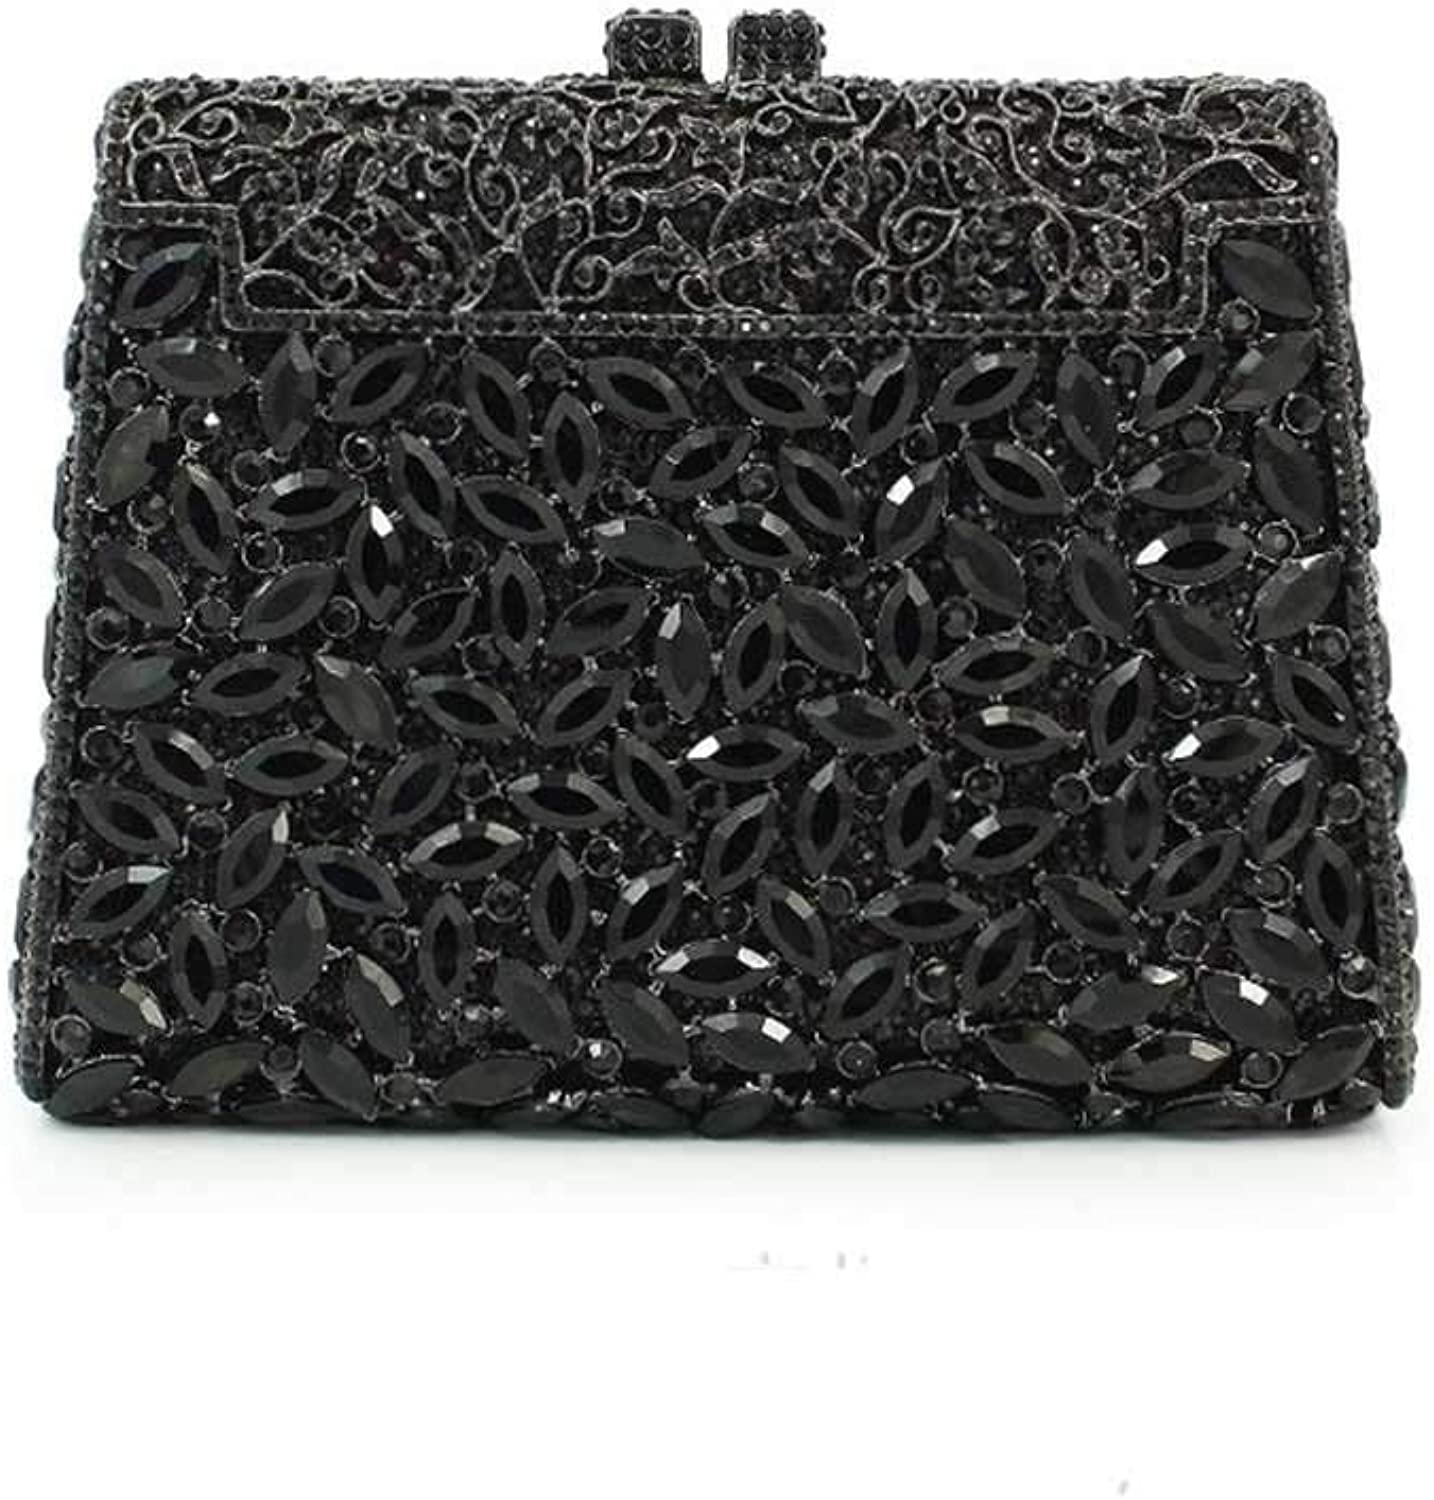 Sturdy Fashian Black Crystal Box Clutch Box Dinner Package with Rhinestone Clothing Gifts Large Capacity (color   Black)